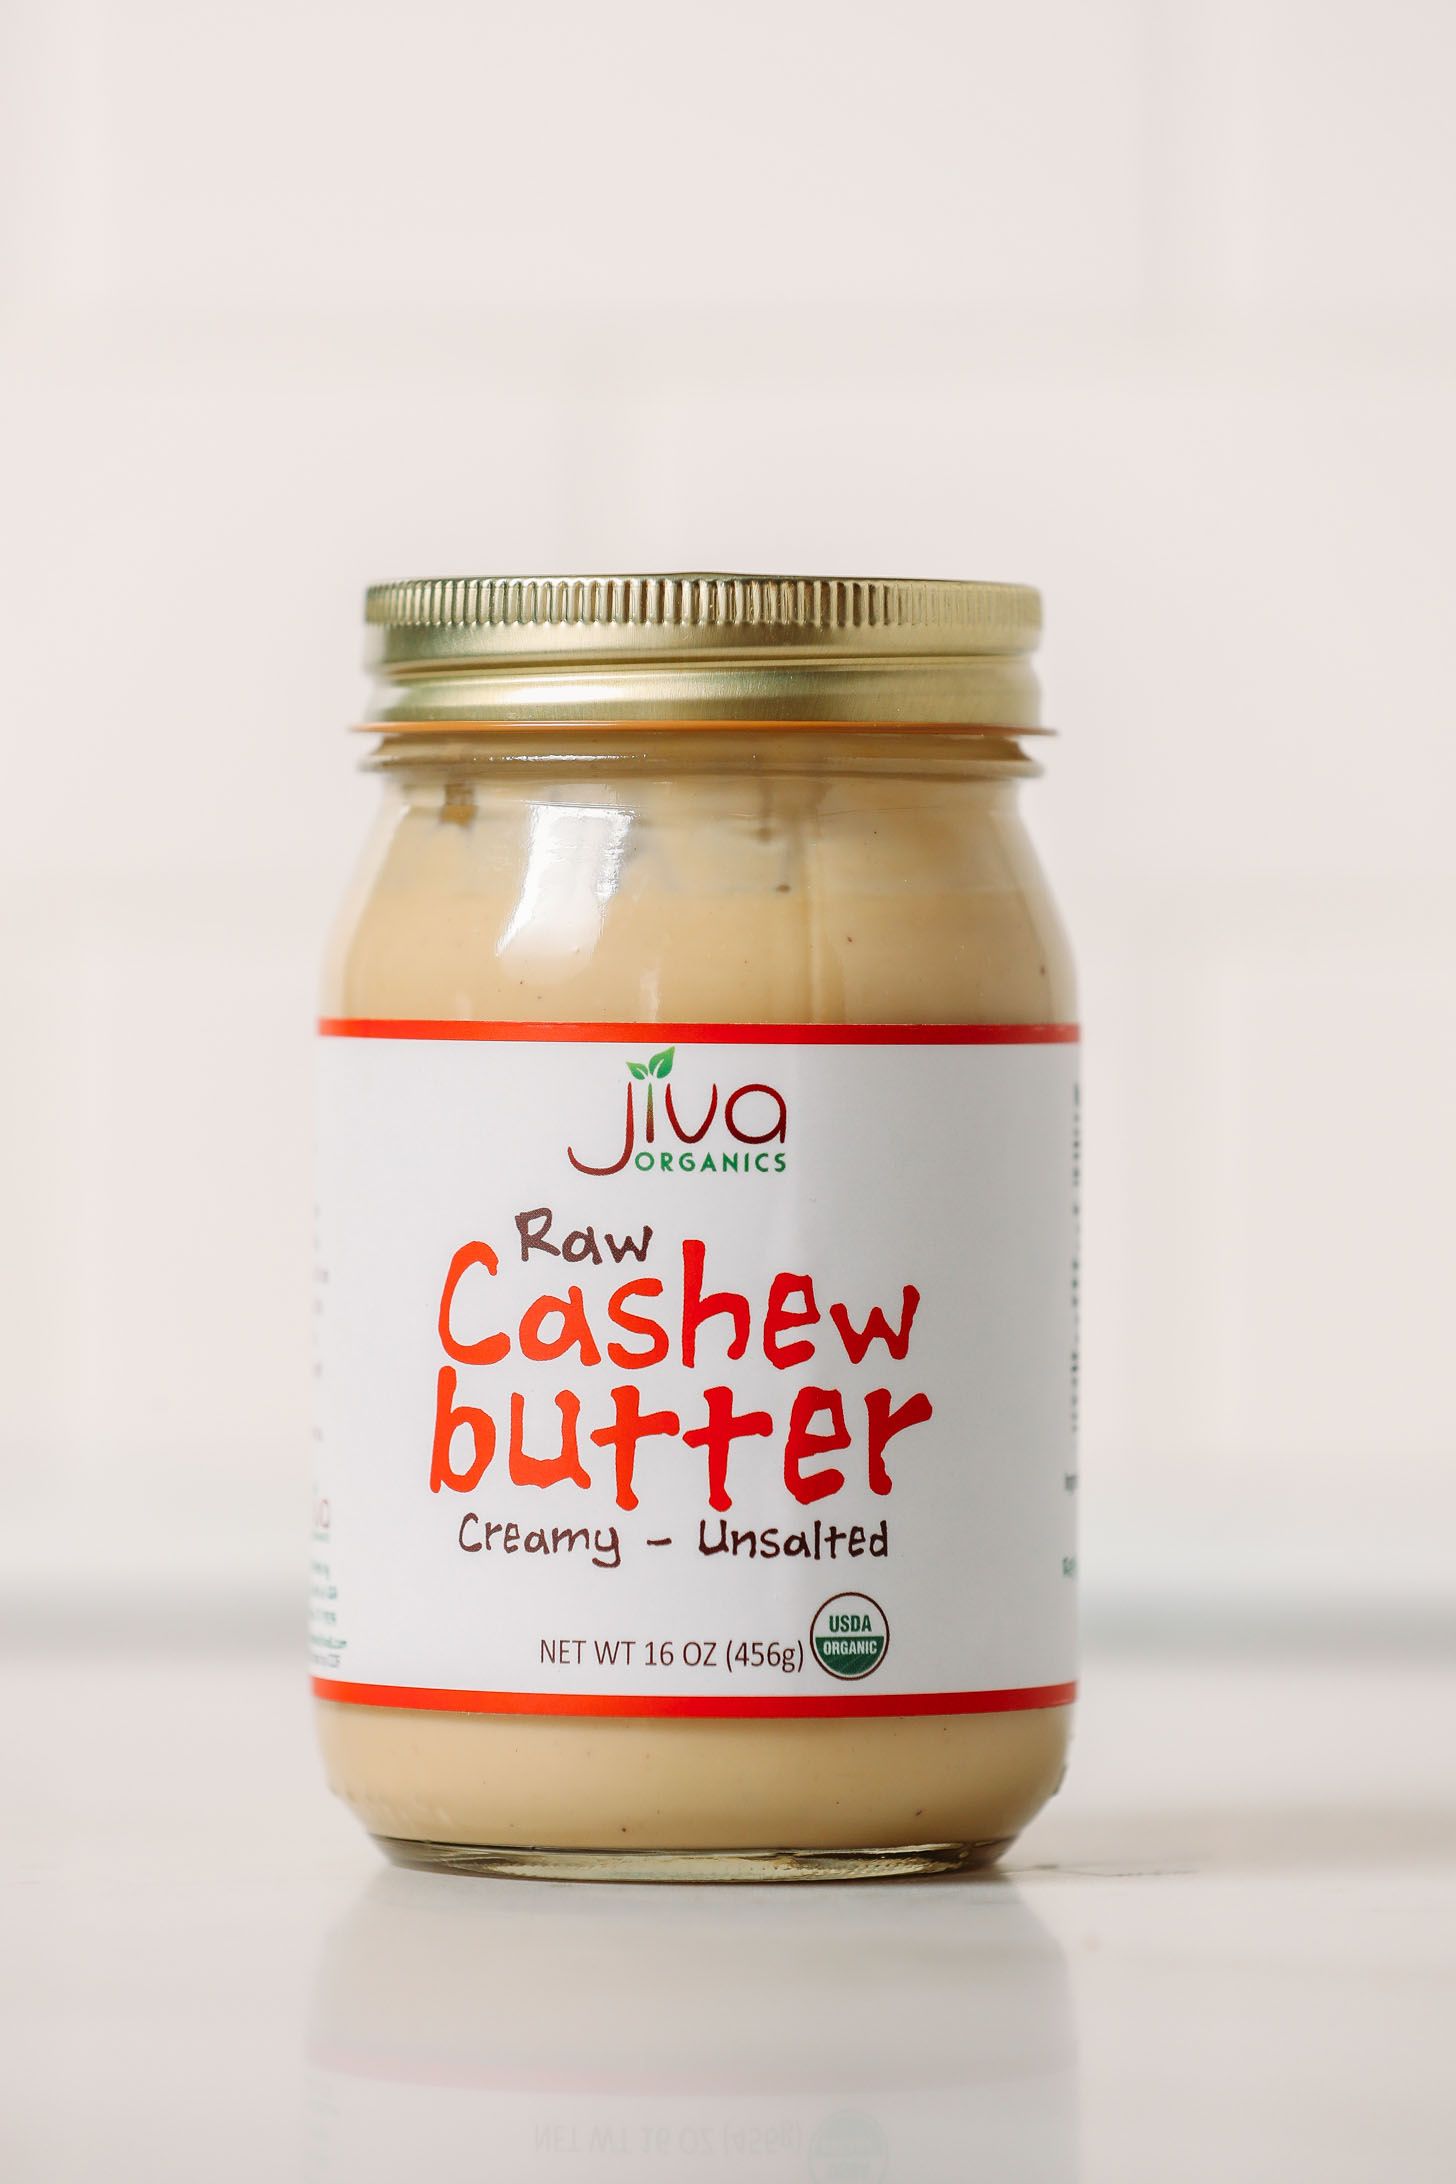 Jar of Jiva Creamy Raw Cashew Butter for our favorite brand of cashew butter